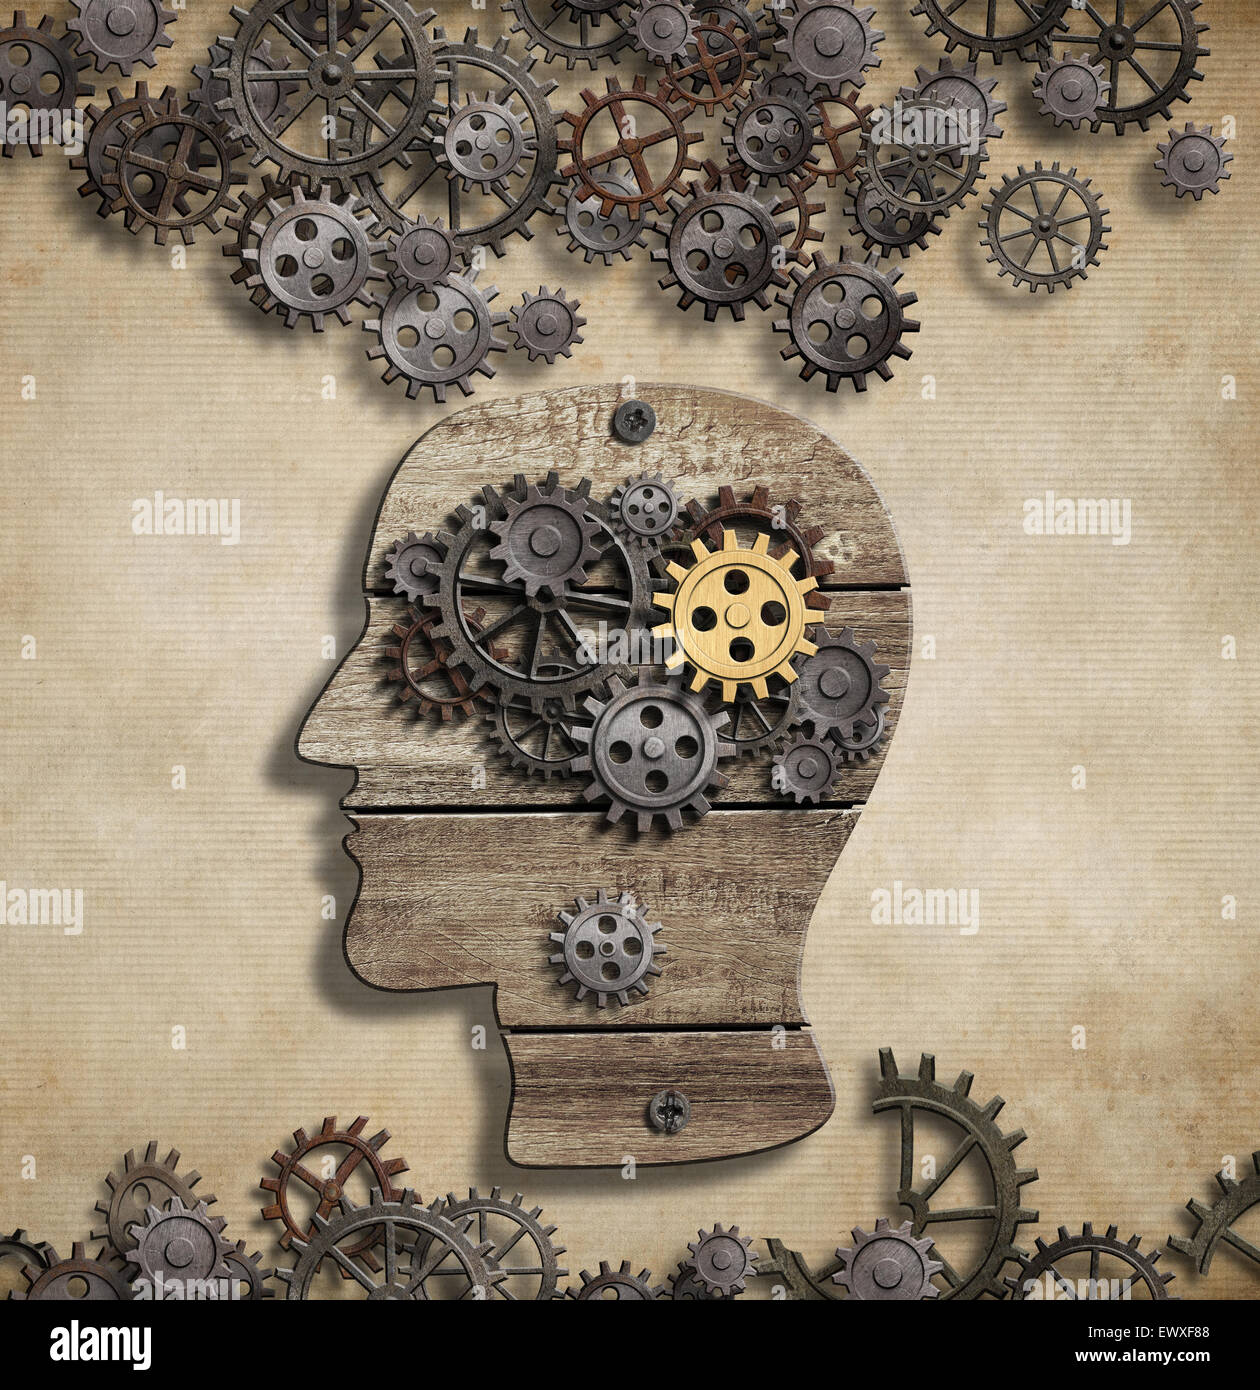 Brain mental activity and idea concept - Stock Image